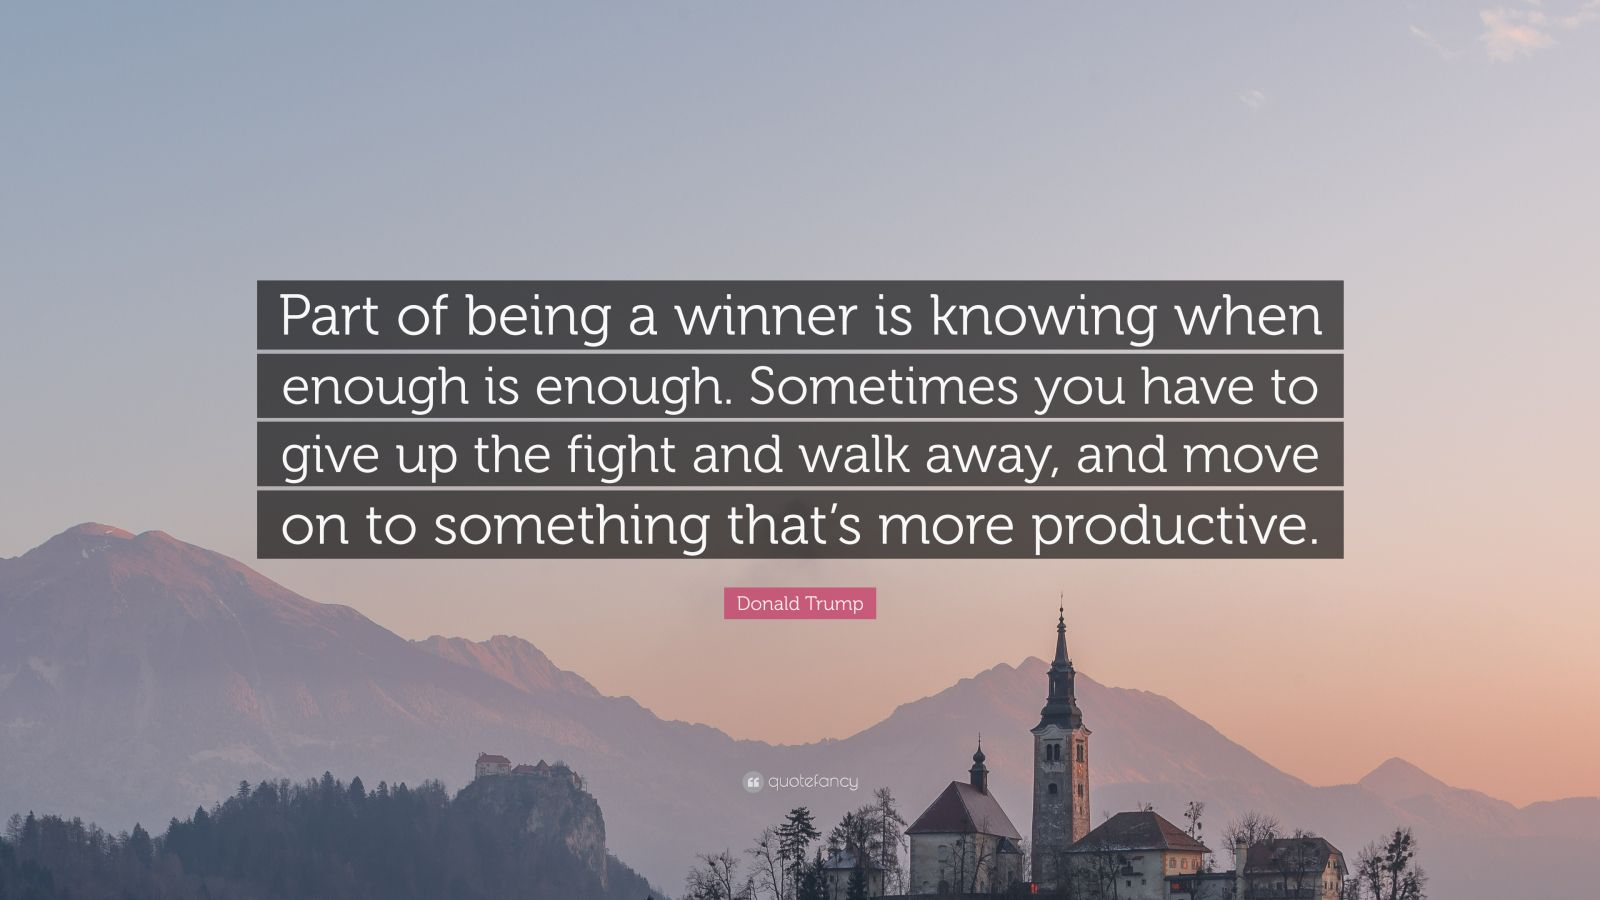 Steve Jobs Motivational Quotes Wallpaper Donald Trump Quote Part Of Being A Winner Is Knowing